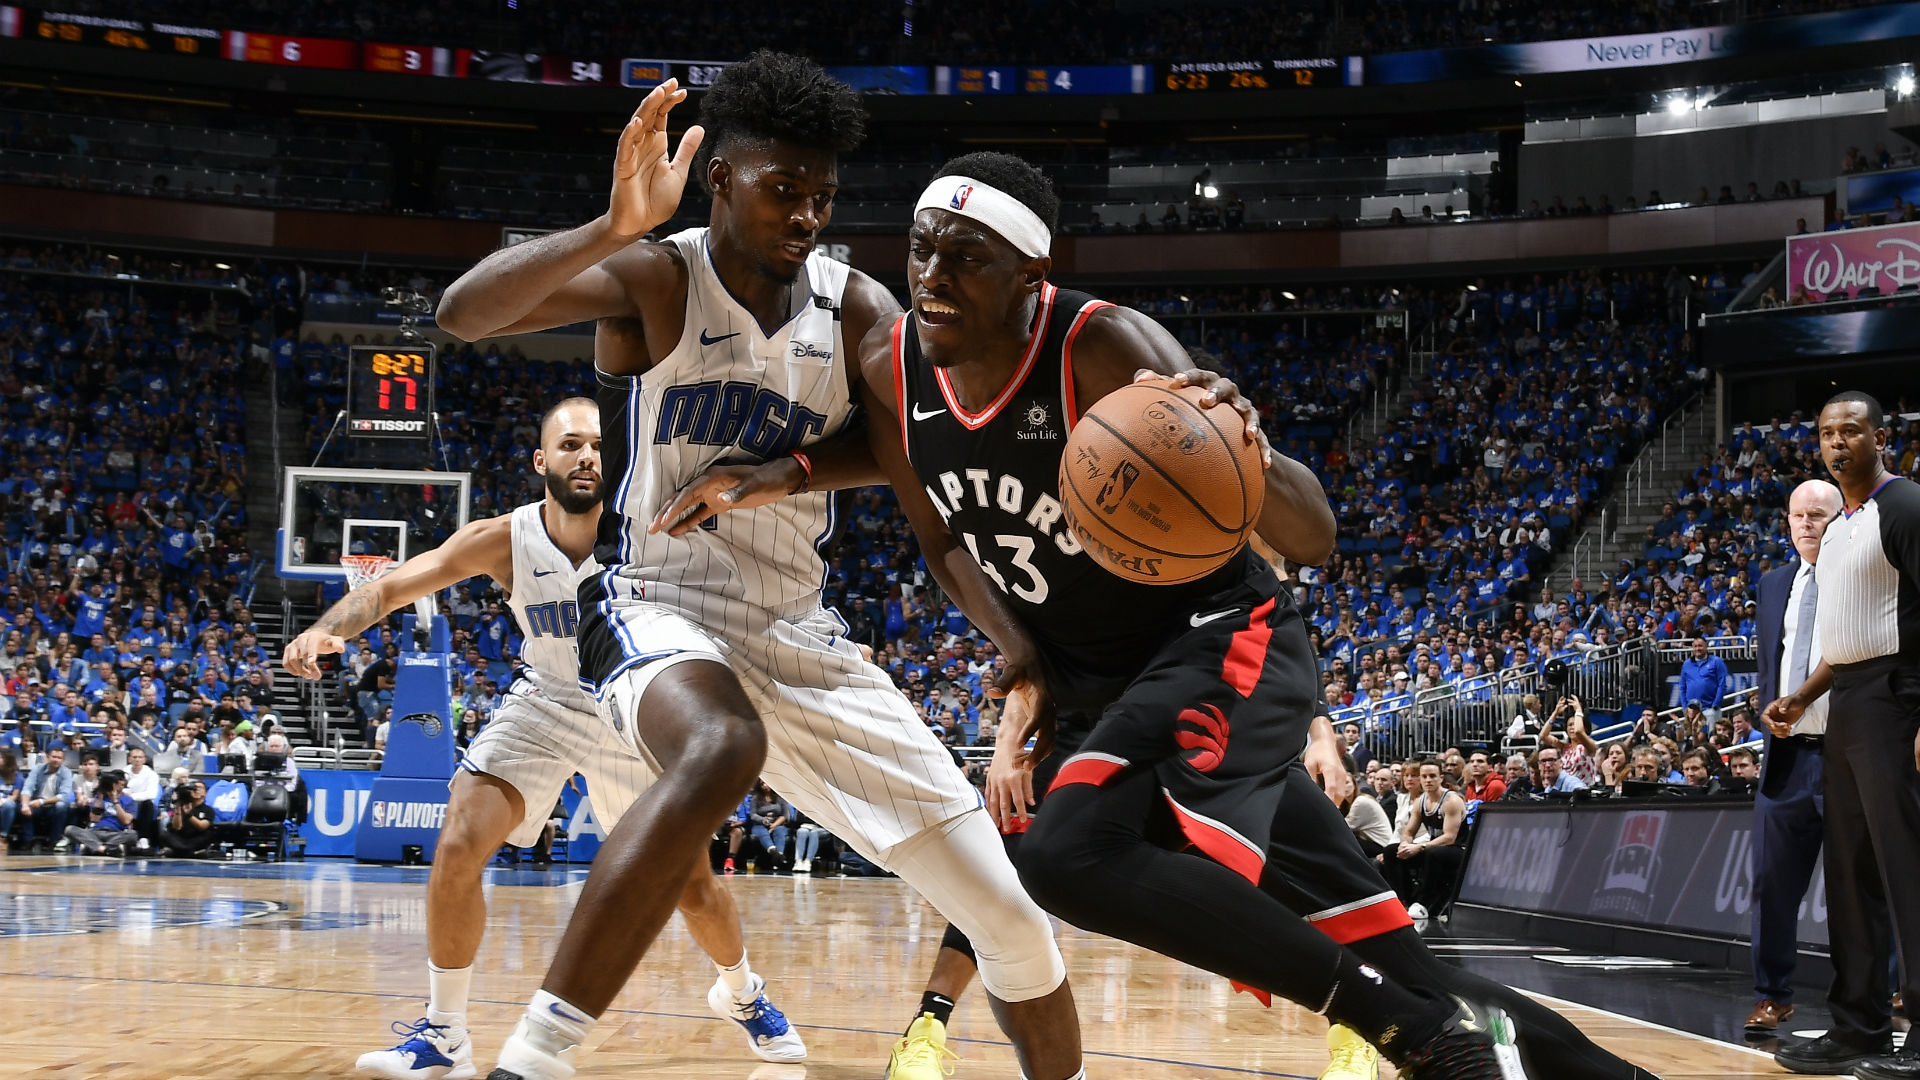 Nba Playoffs 2019 Four Takeaways From A Hard Fought Game